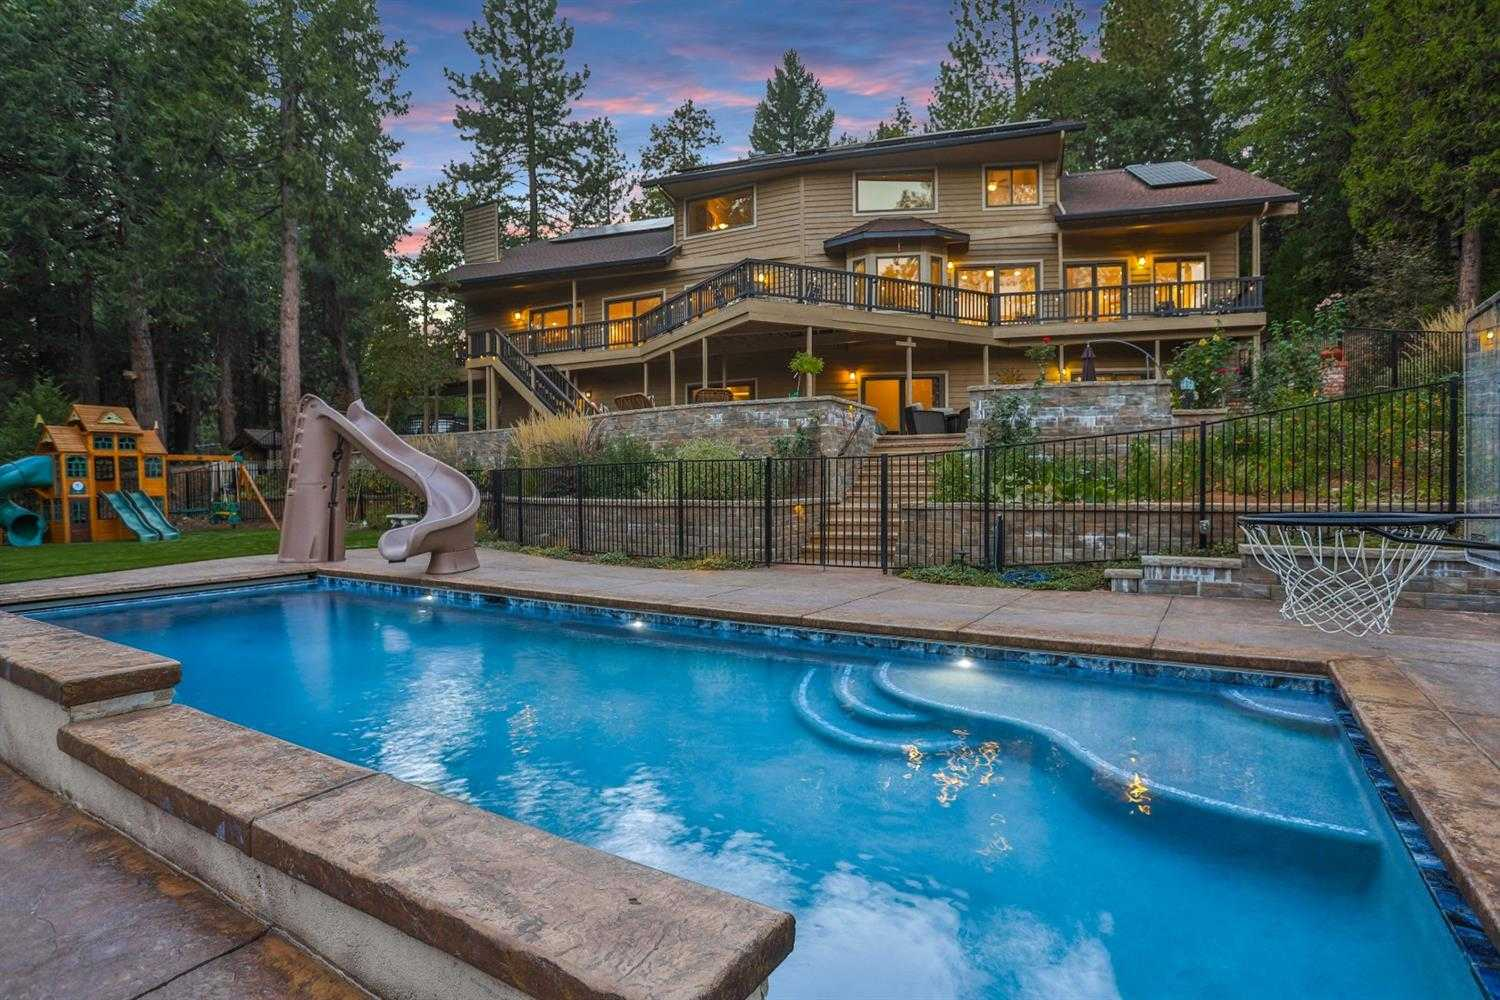 $1,300,000 - 6Br/5Ba -  for Sale in Pollock Pines